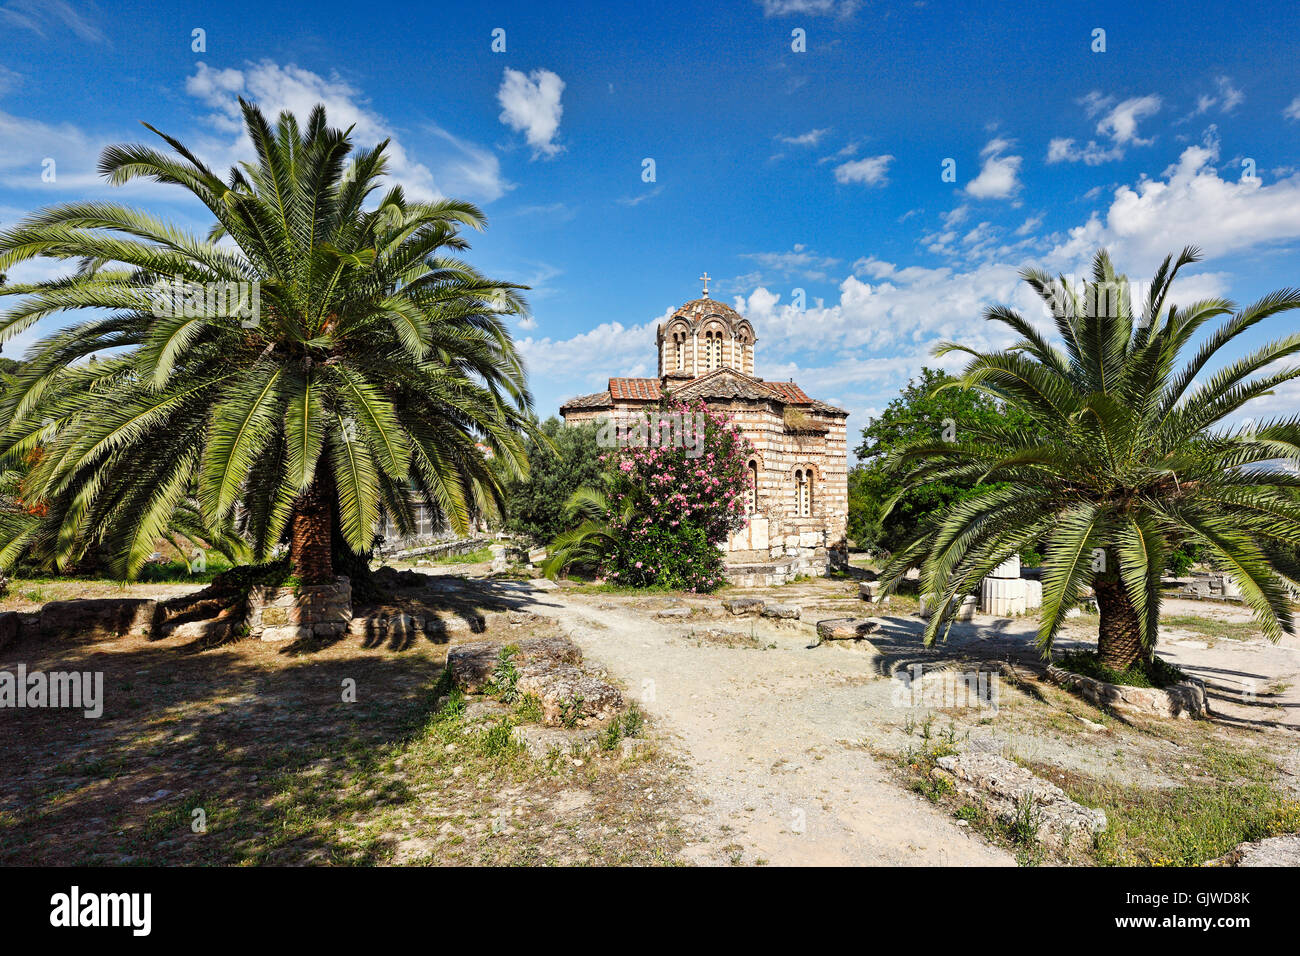 Agii Apostoli Solaki church (10th c. A.D.) in the Ancient Athenian Agora, Greece - Stock Image